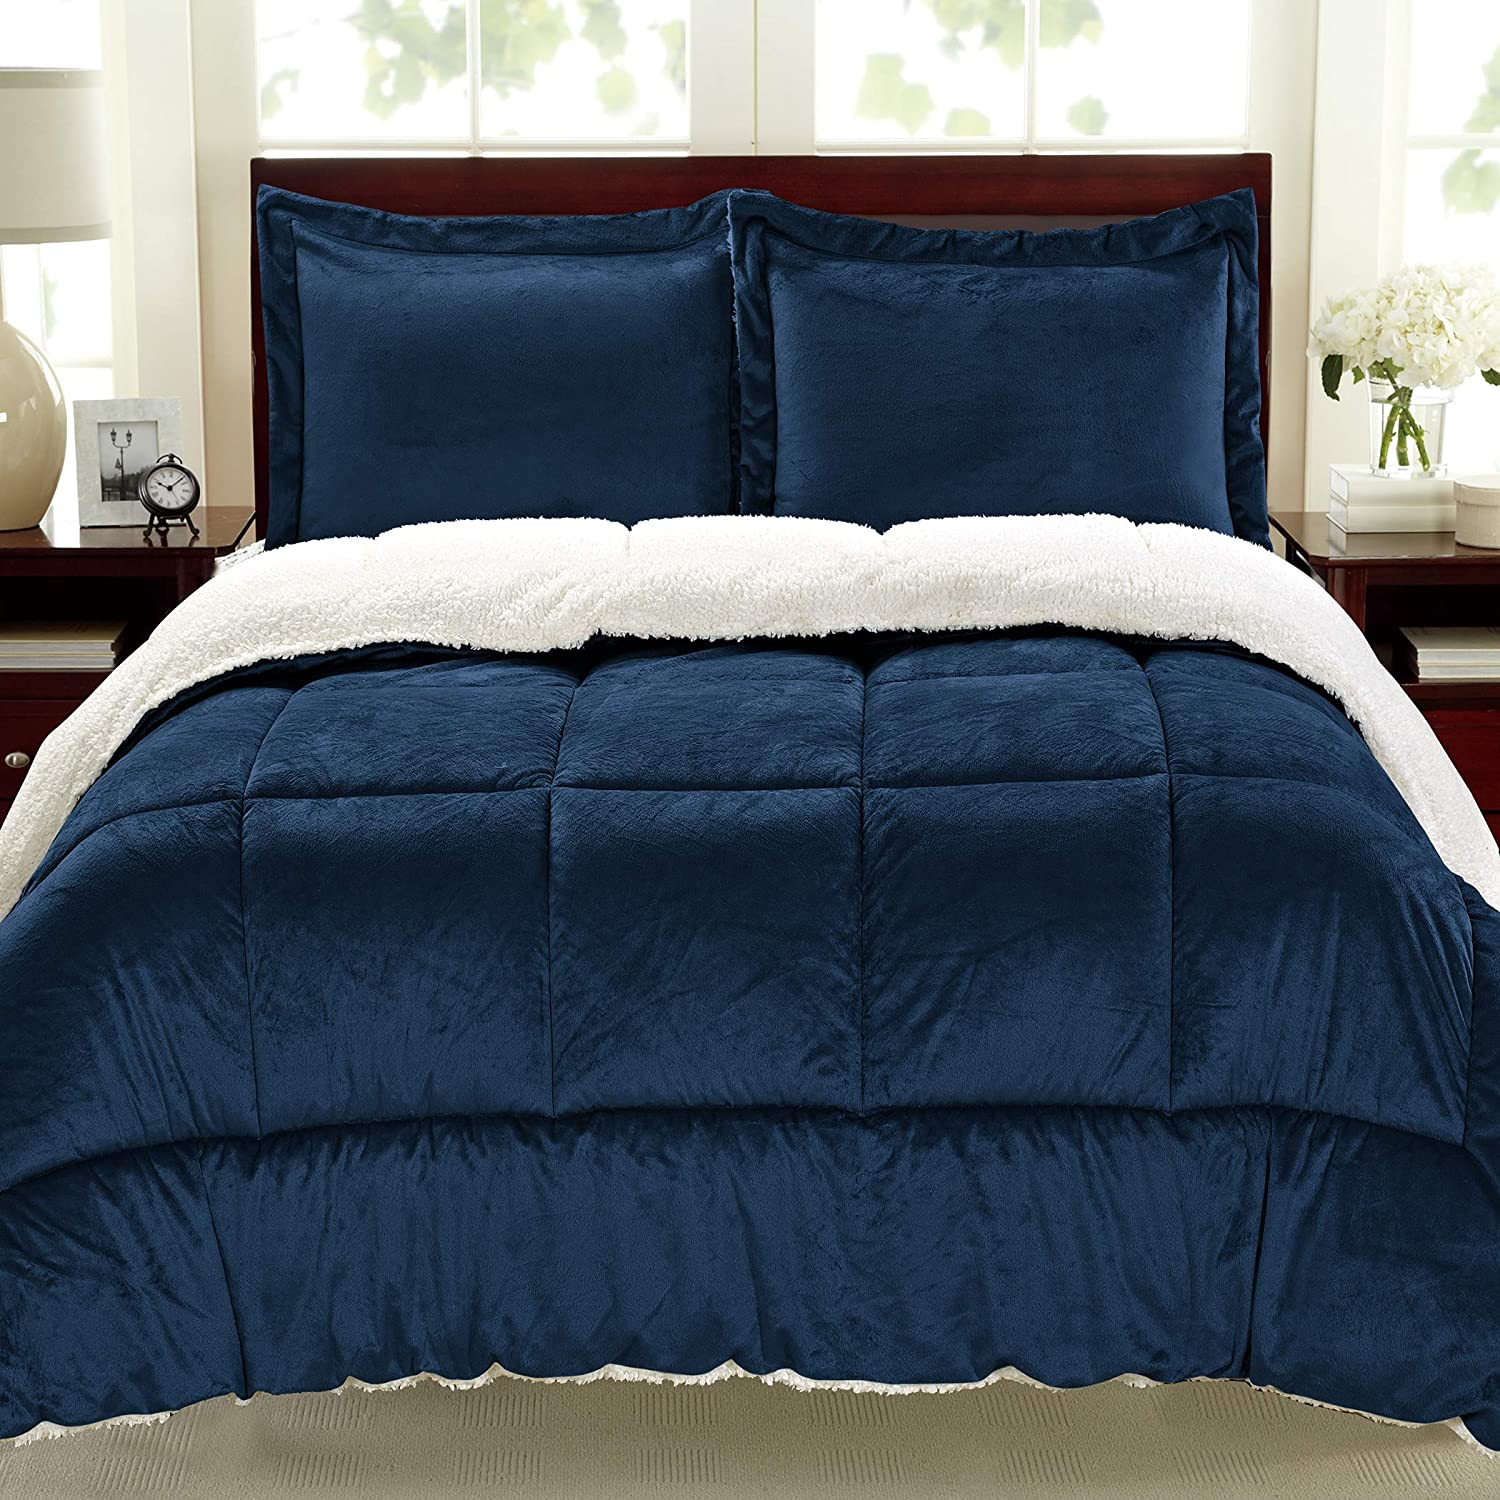 Premium Fashion Bedding Ultra Soft and Plush Reversible Micromink and Sherpa 3 Piece Comforter and Sham Set, Navy, King (102